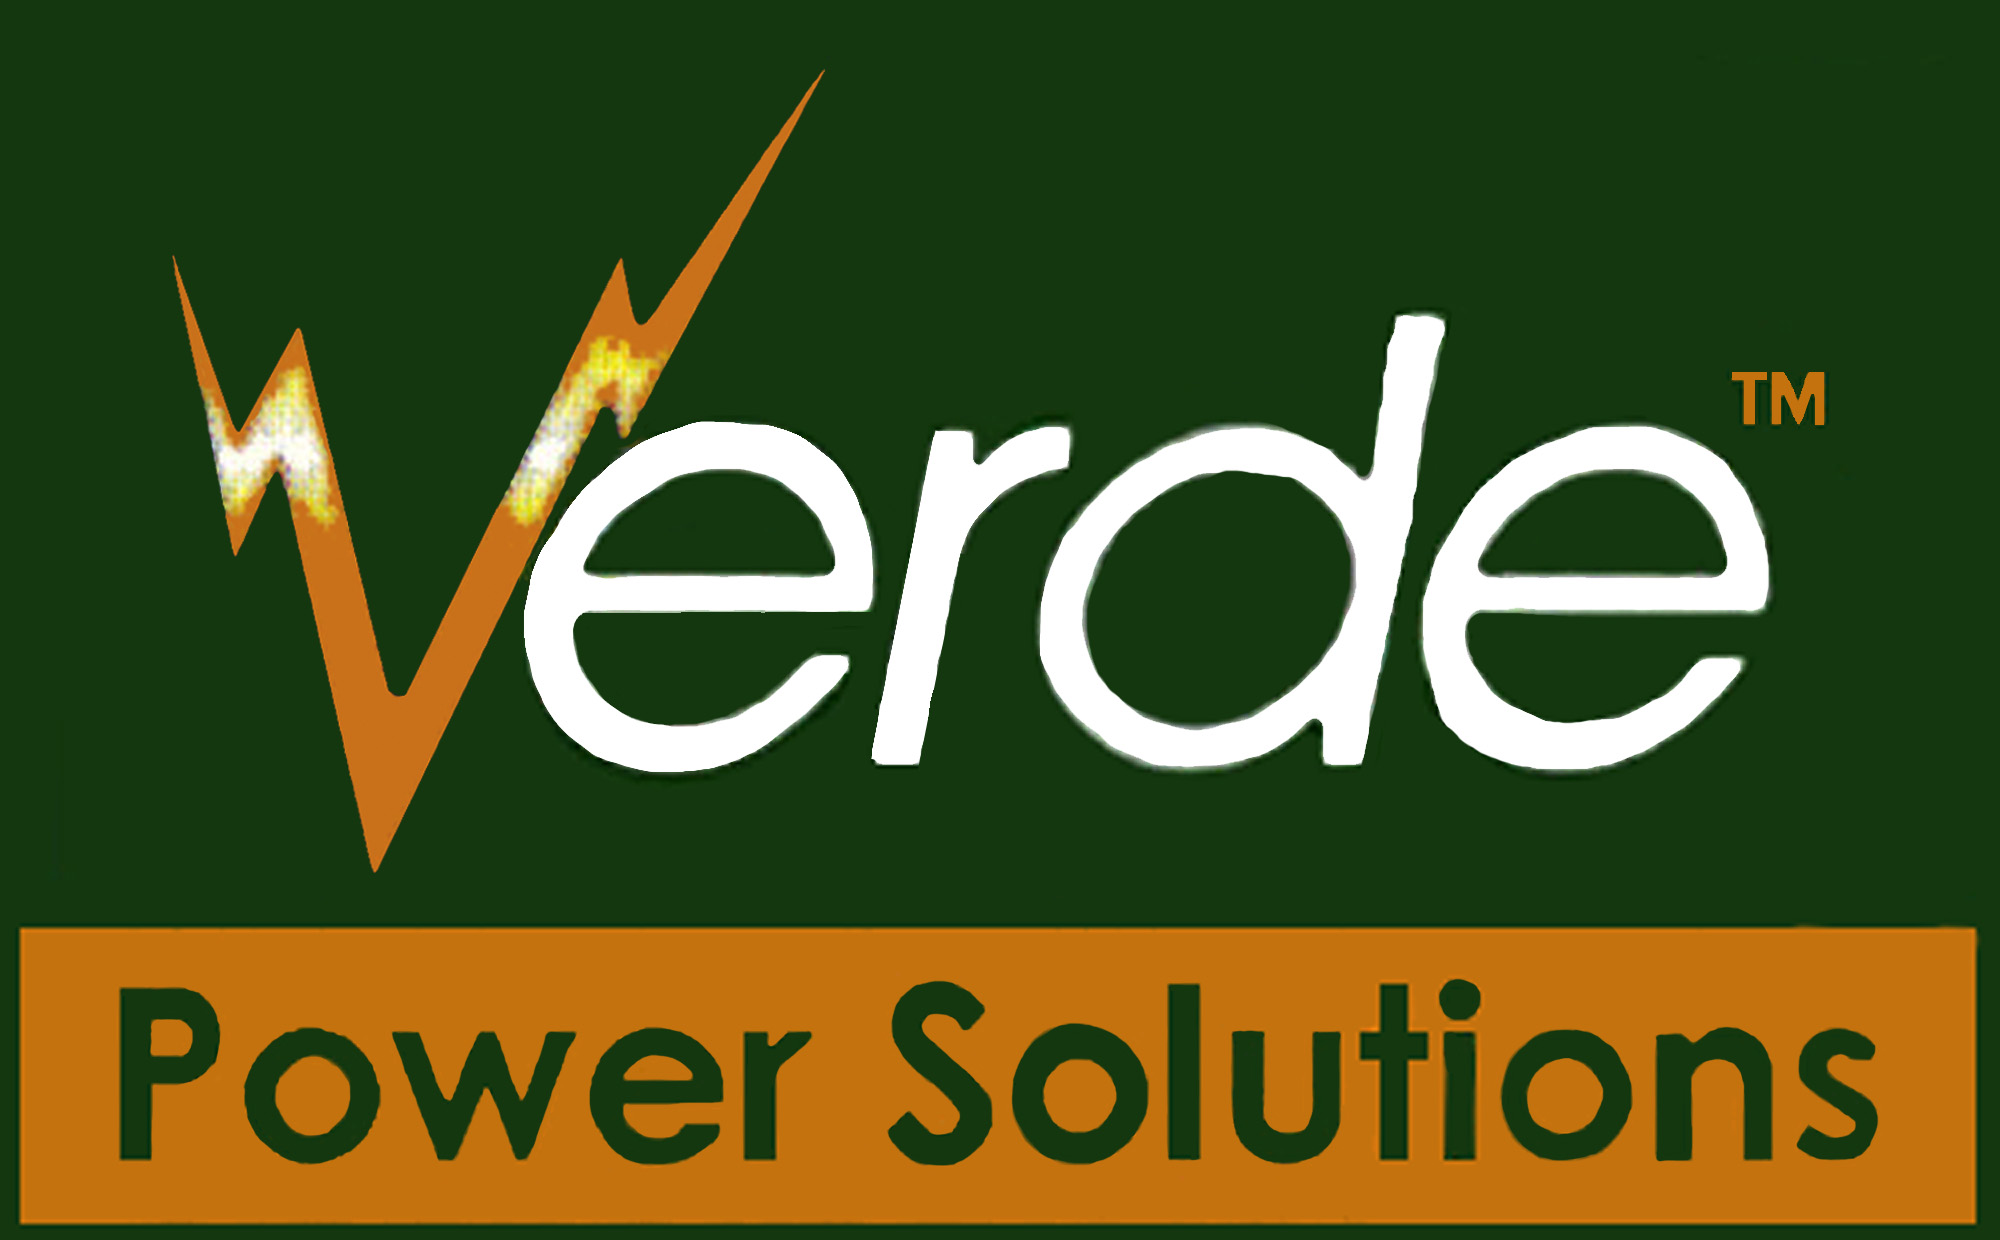 Verde Power Solutions